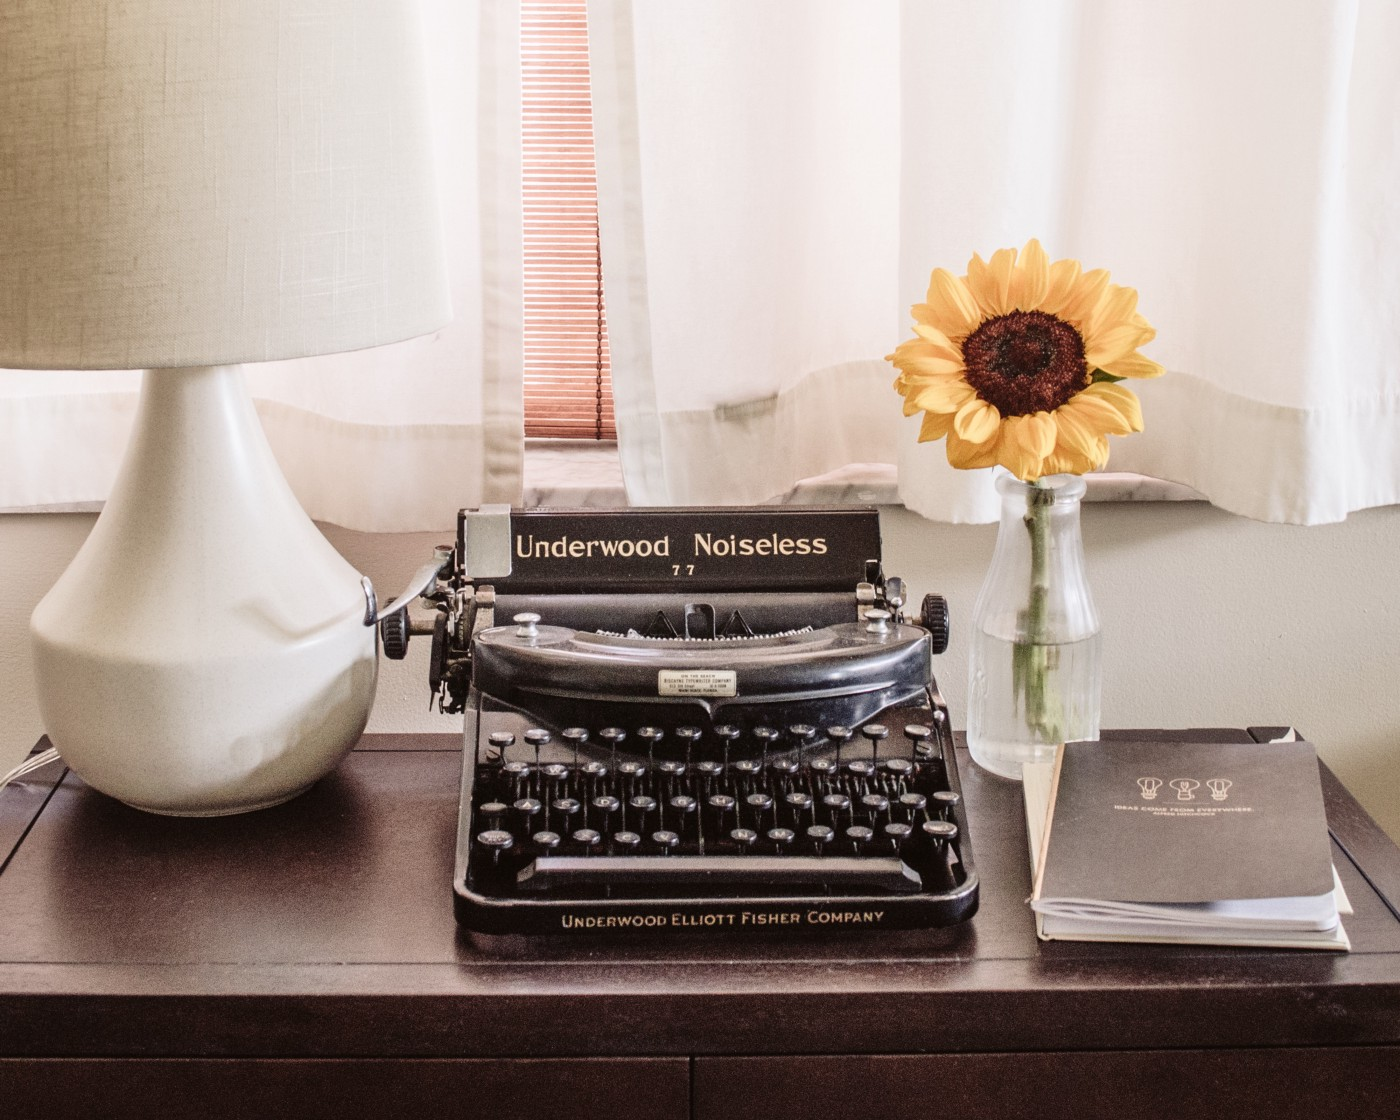 A typewriter, a white lamp, a sunflower in a vase, and a notebook